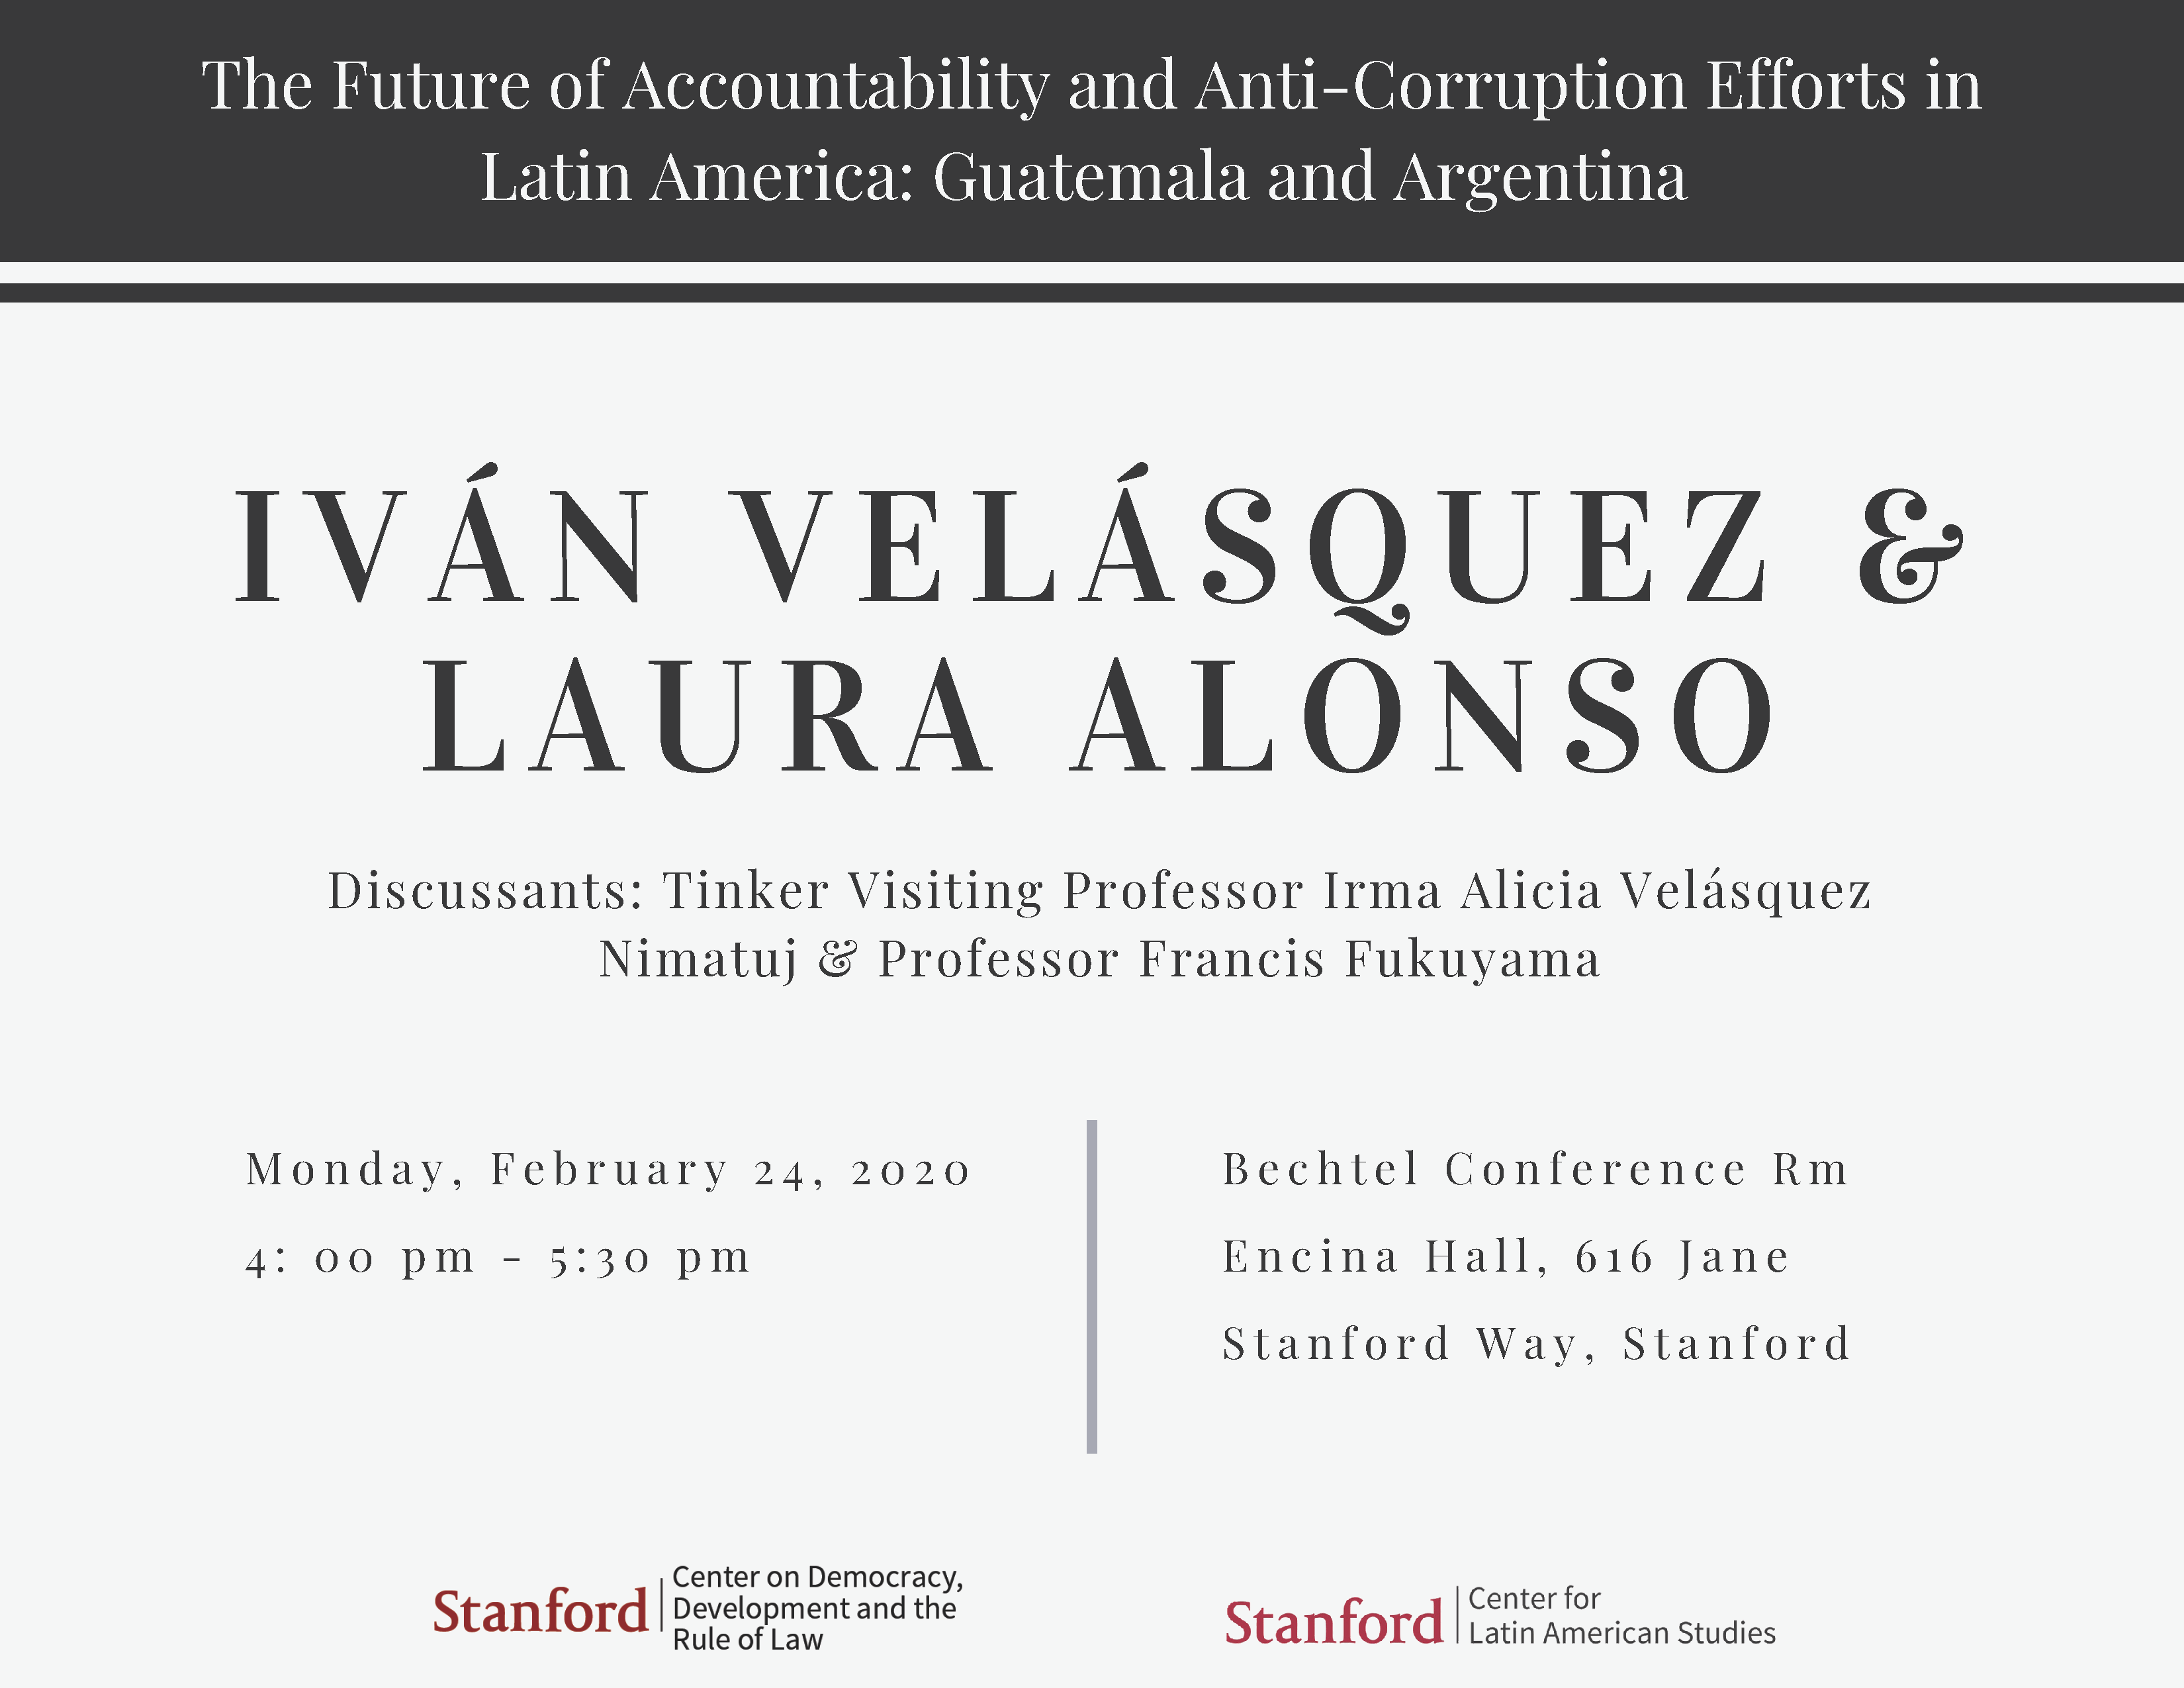 The Future of Accountability and Anti-Corruption Efforts in Latin